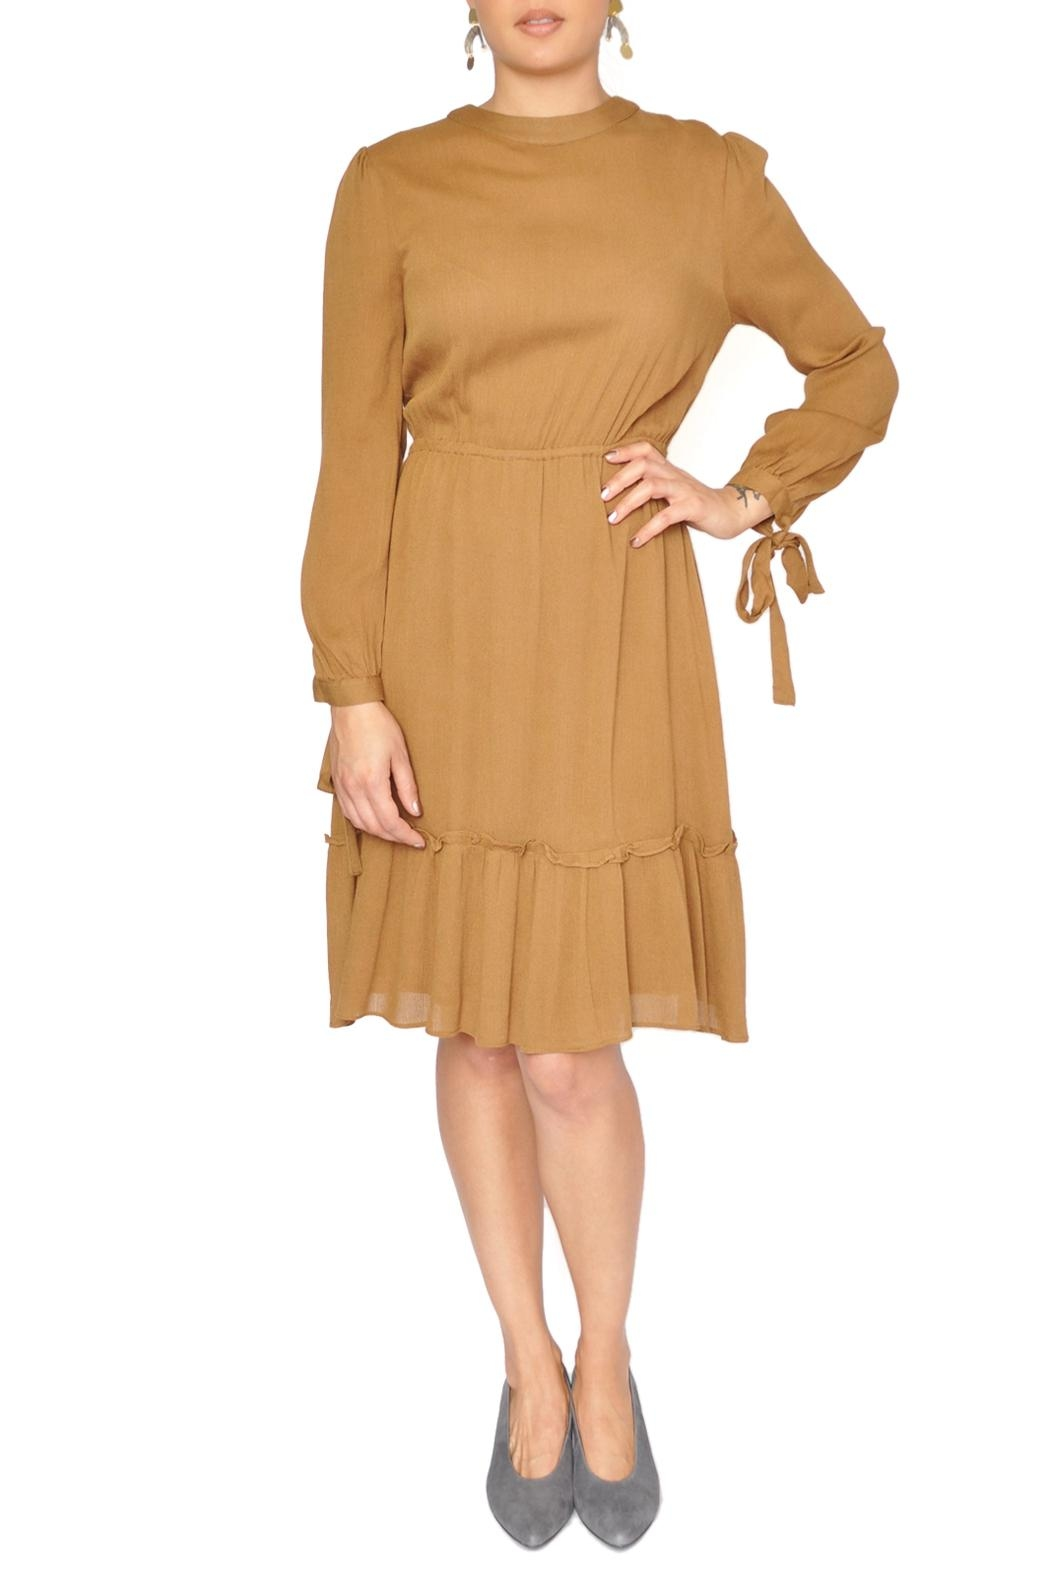 Moon River Mustard Yellow Dress - Front Cropped Image